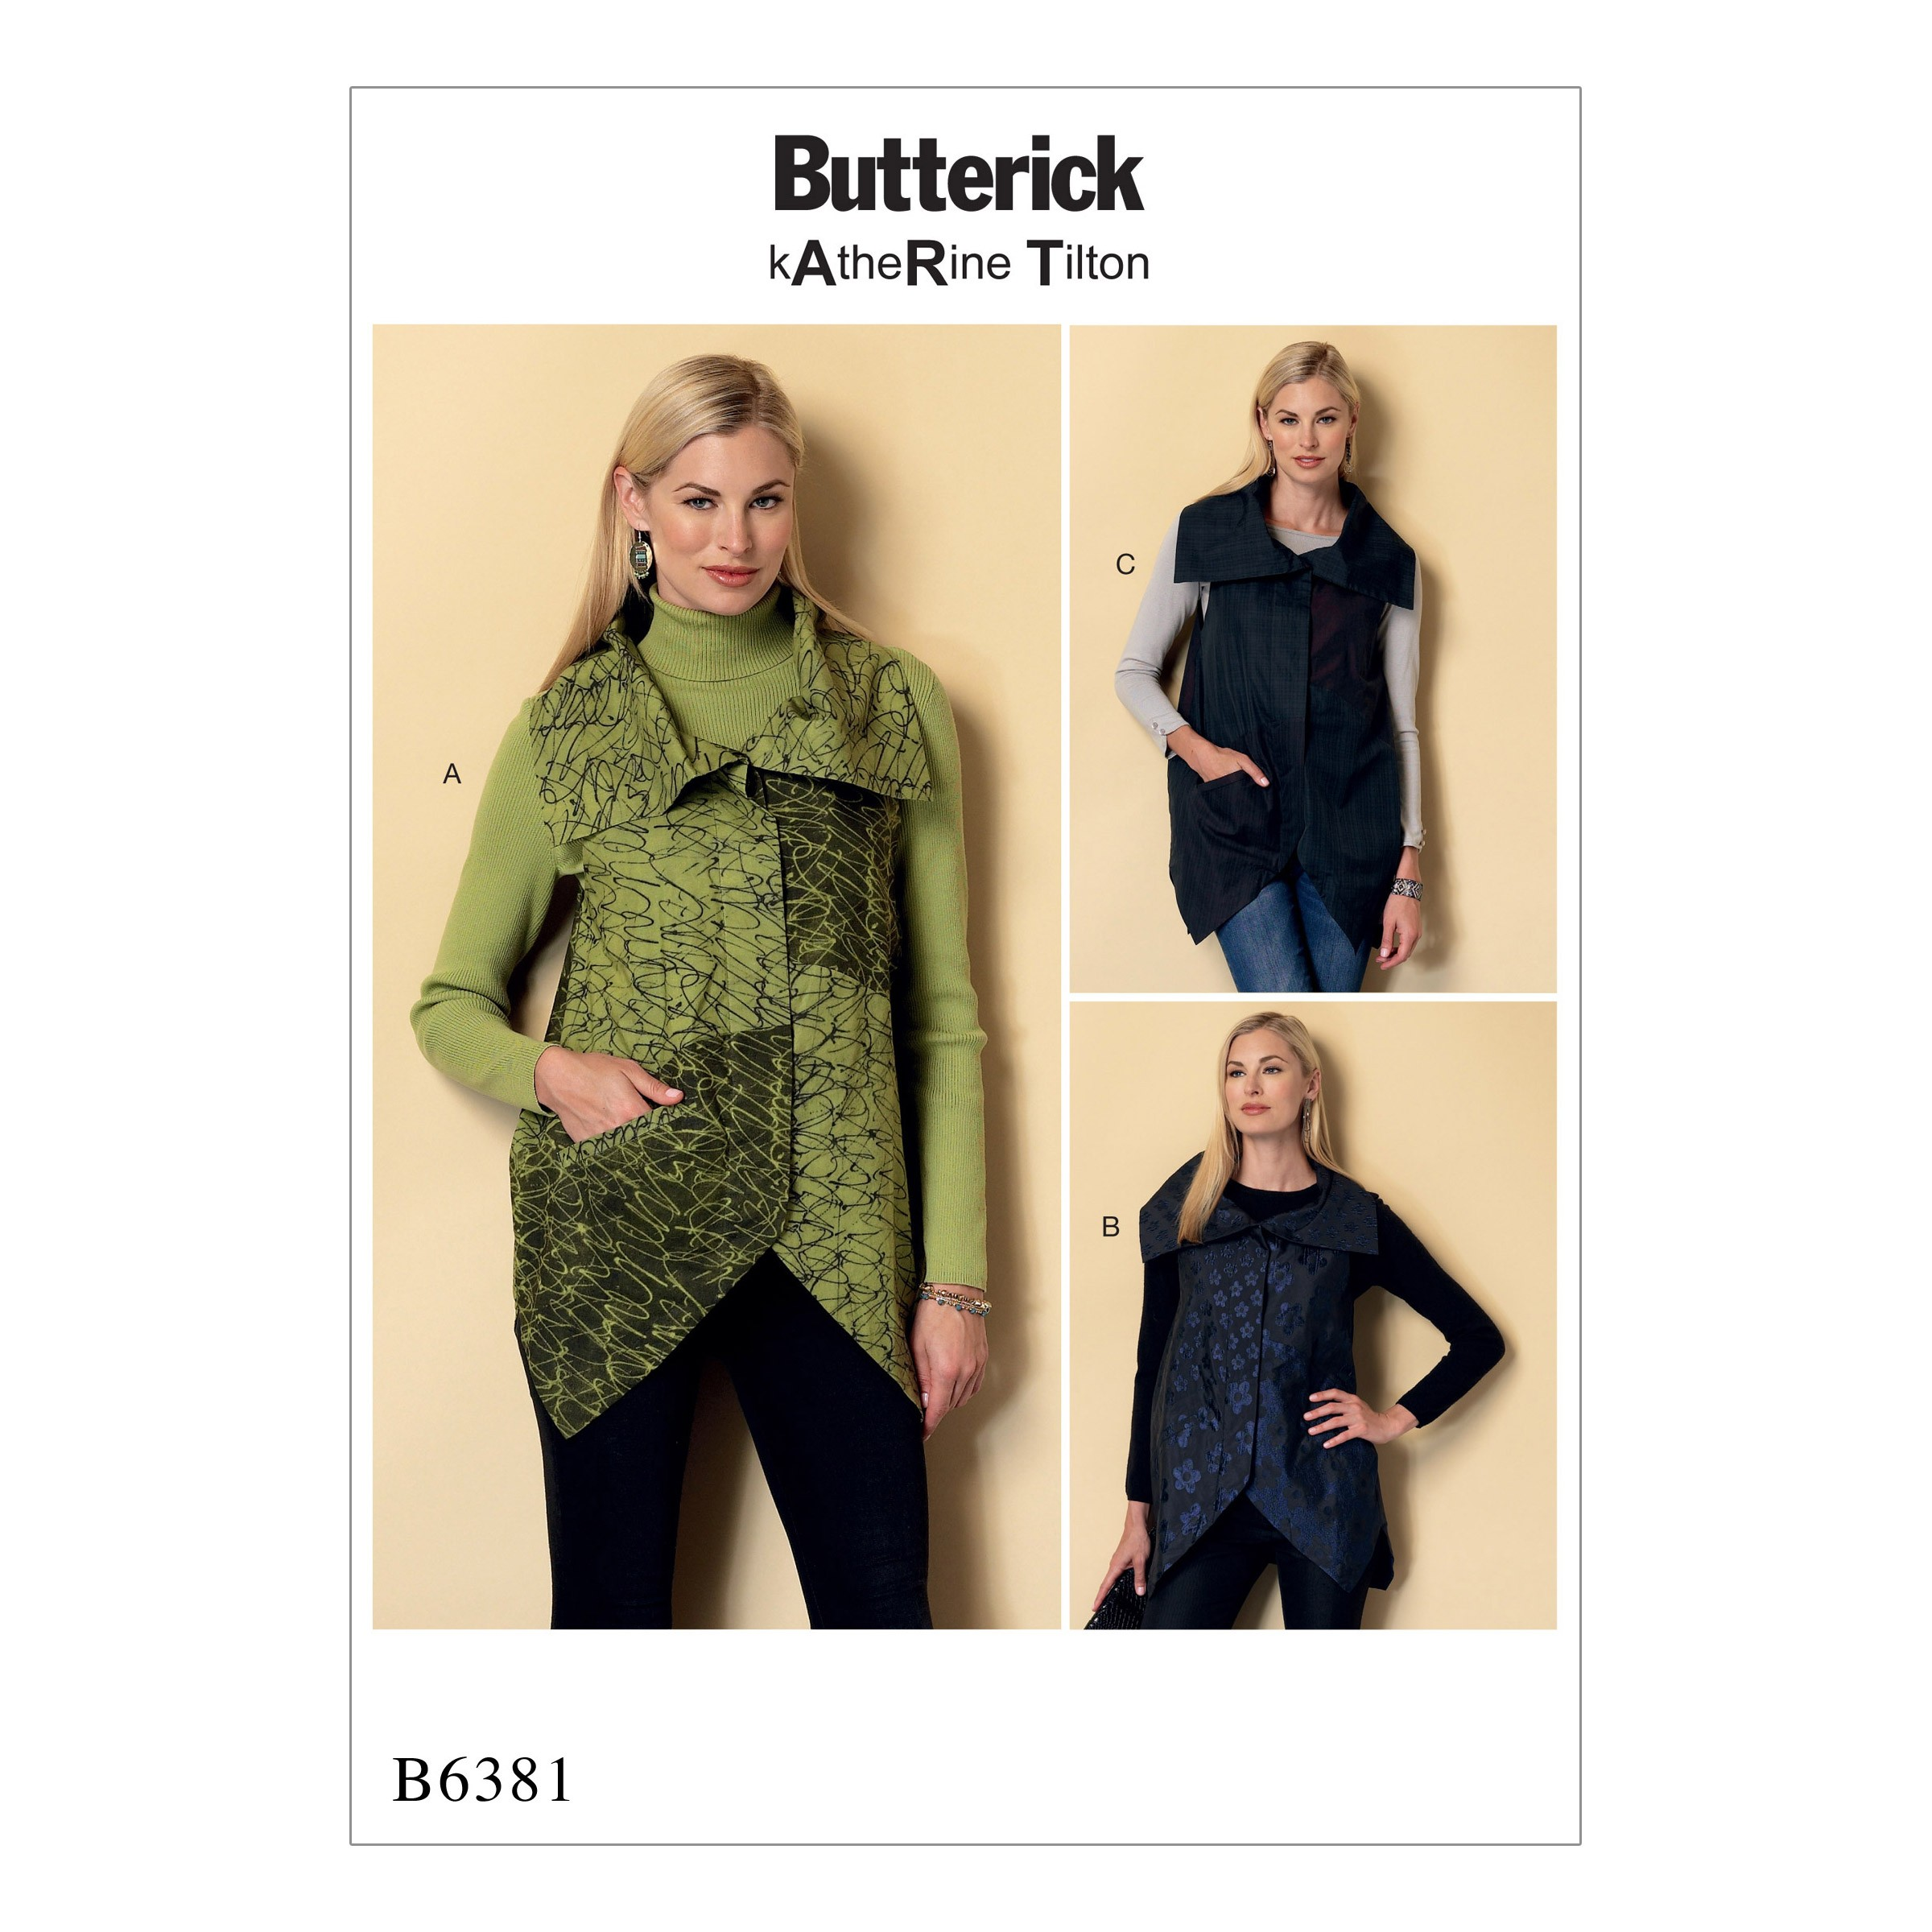 Butterick Sewing Pattern 6381 Misses' Collared Vests with Asymmetrical Hems